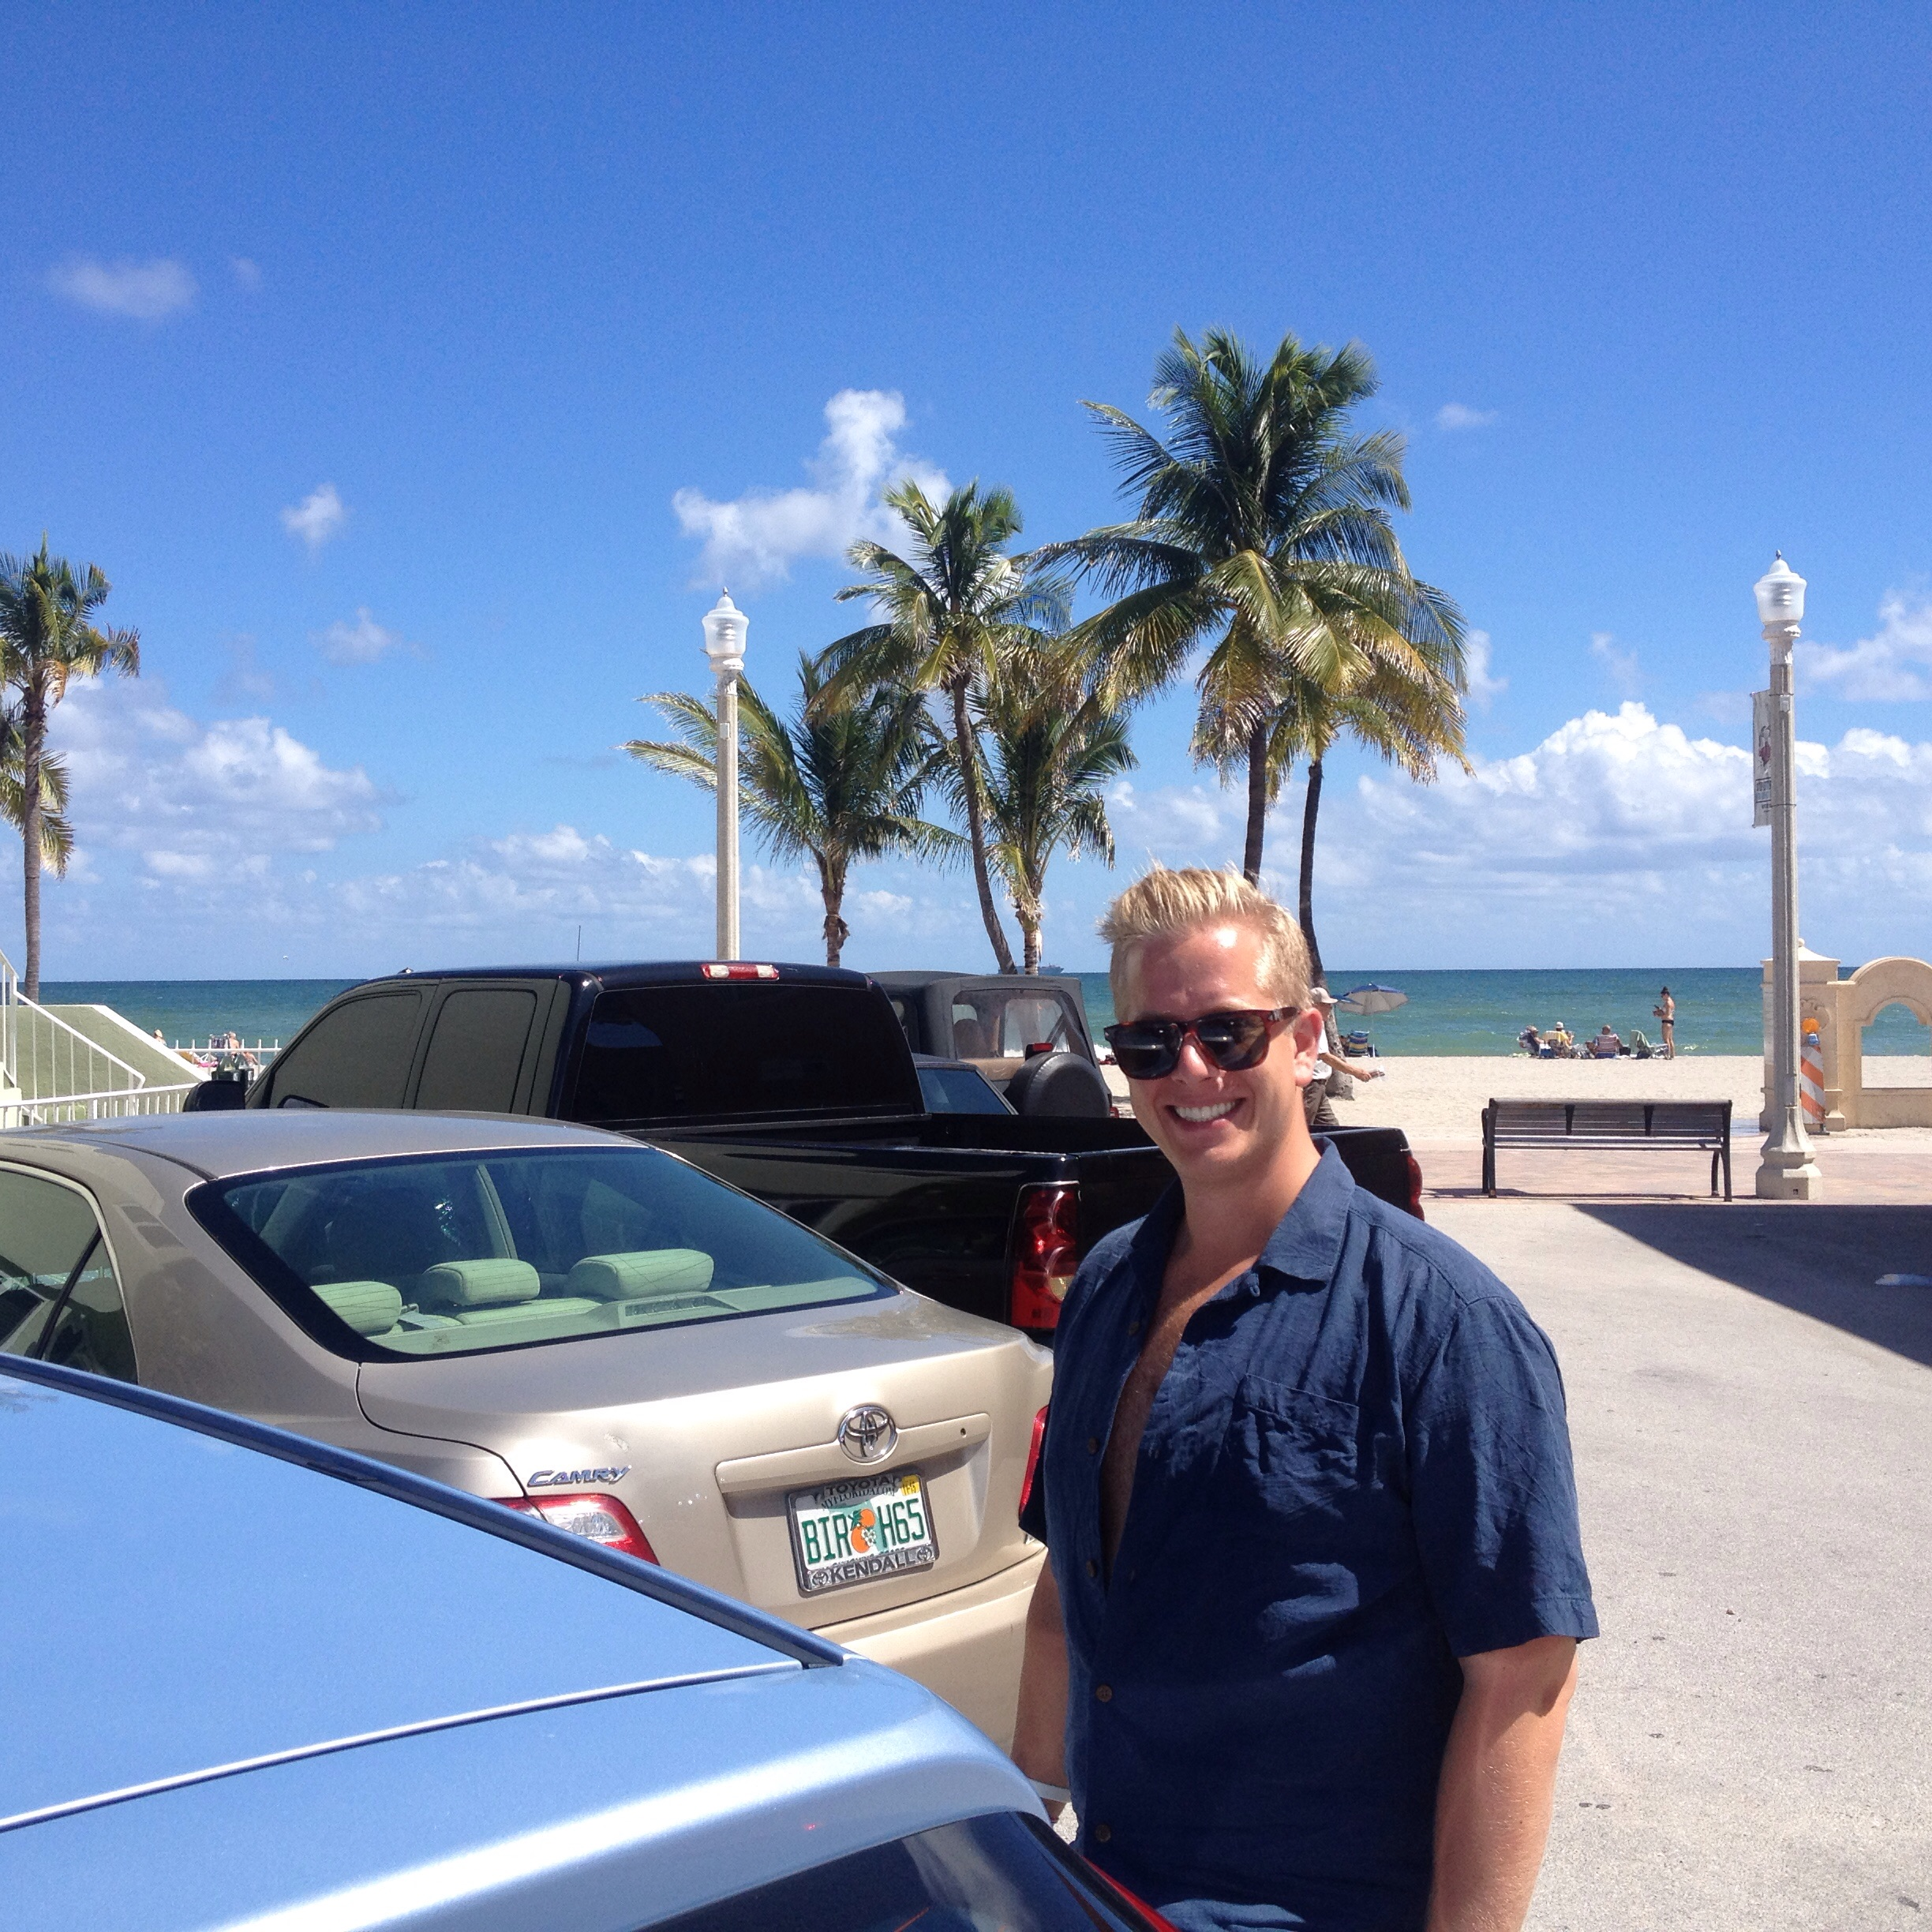 Boring day fixing practical stuff for work today, posting some pics from the trip Albin and I made to Miami last Saturday. Stops in Key Biscayne as well as Little Havanna.